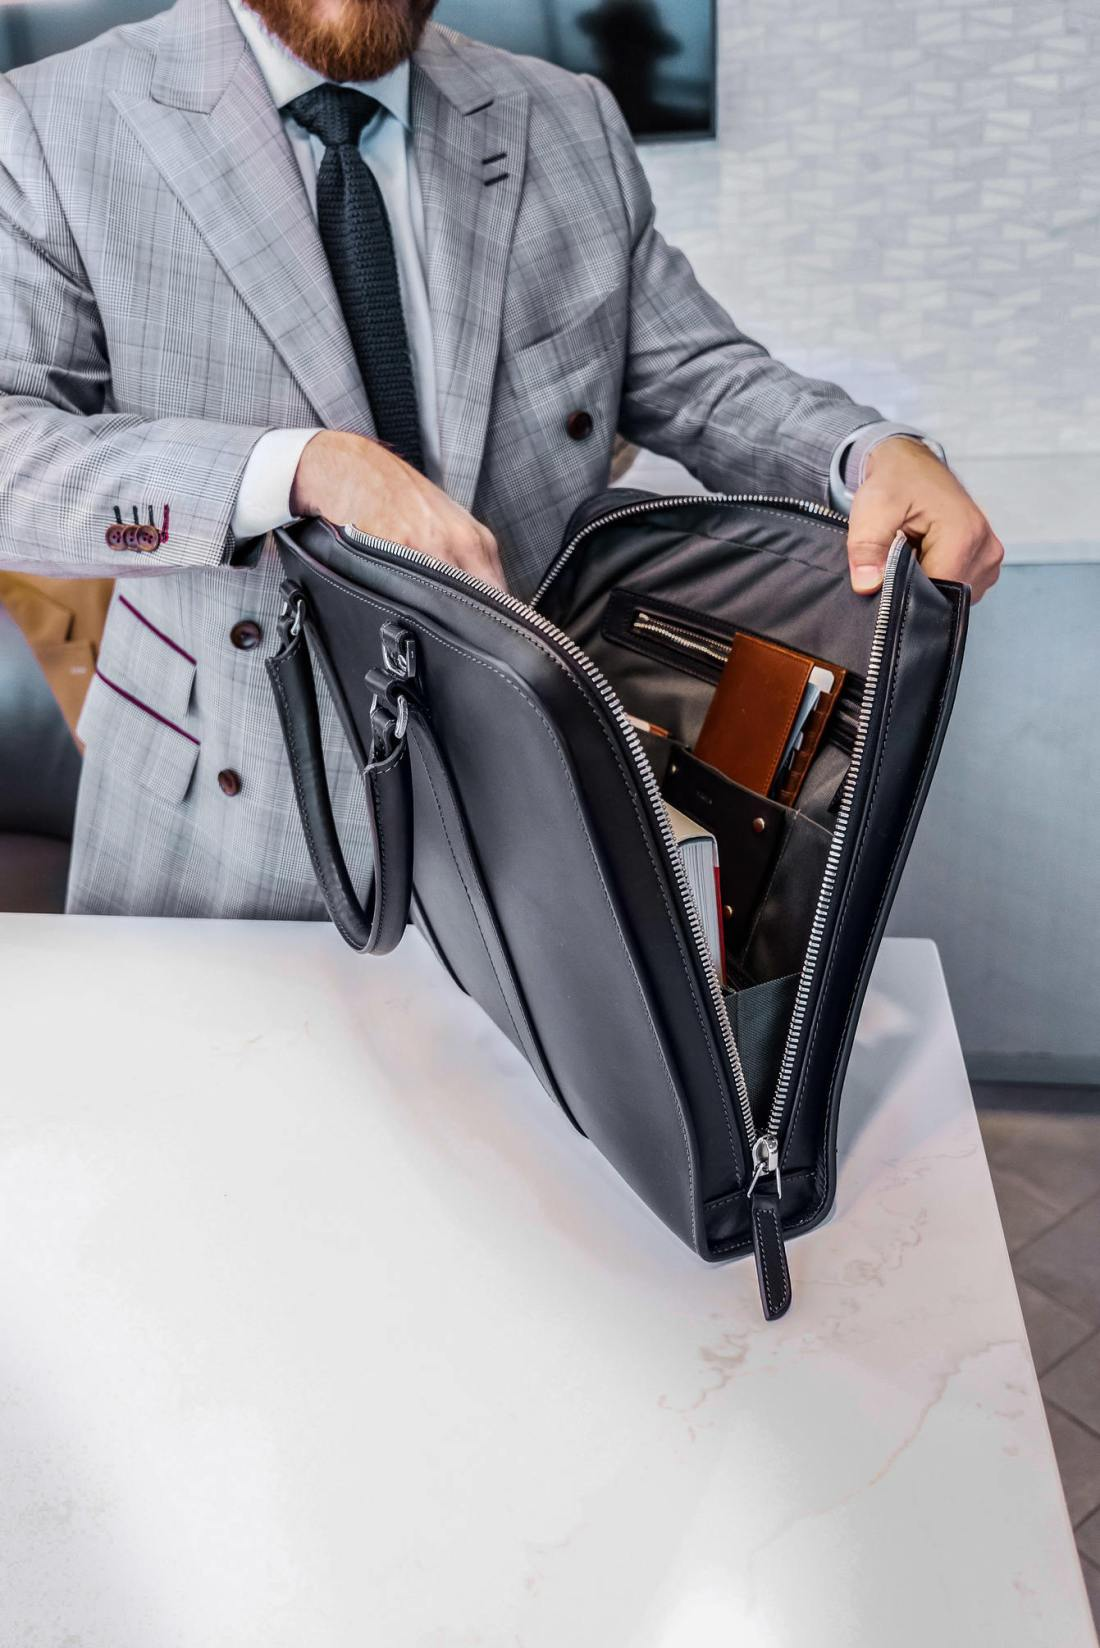 Opening the Palissy briefcase